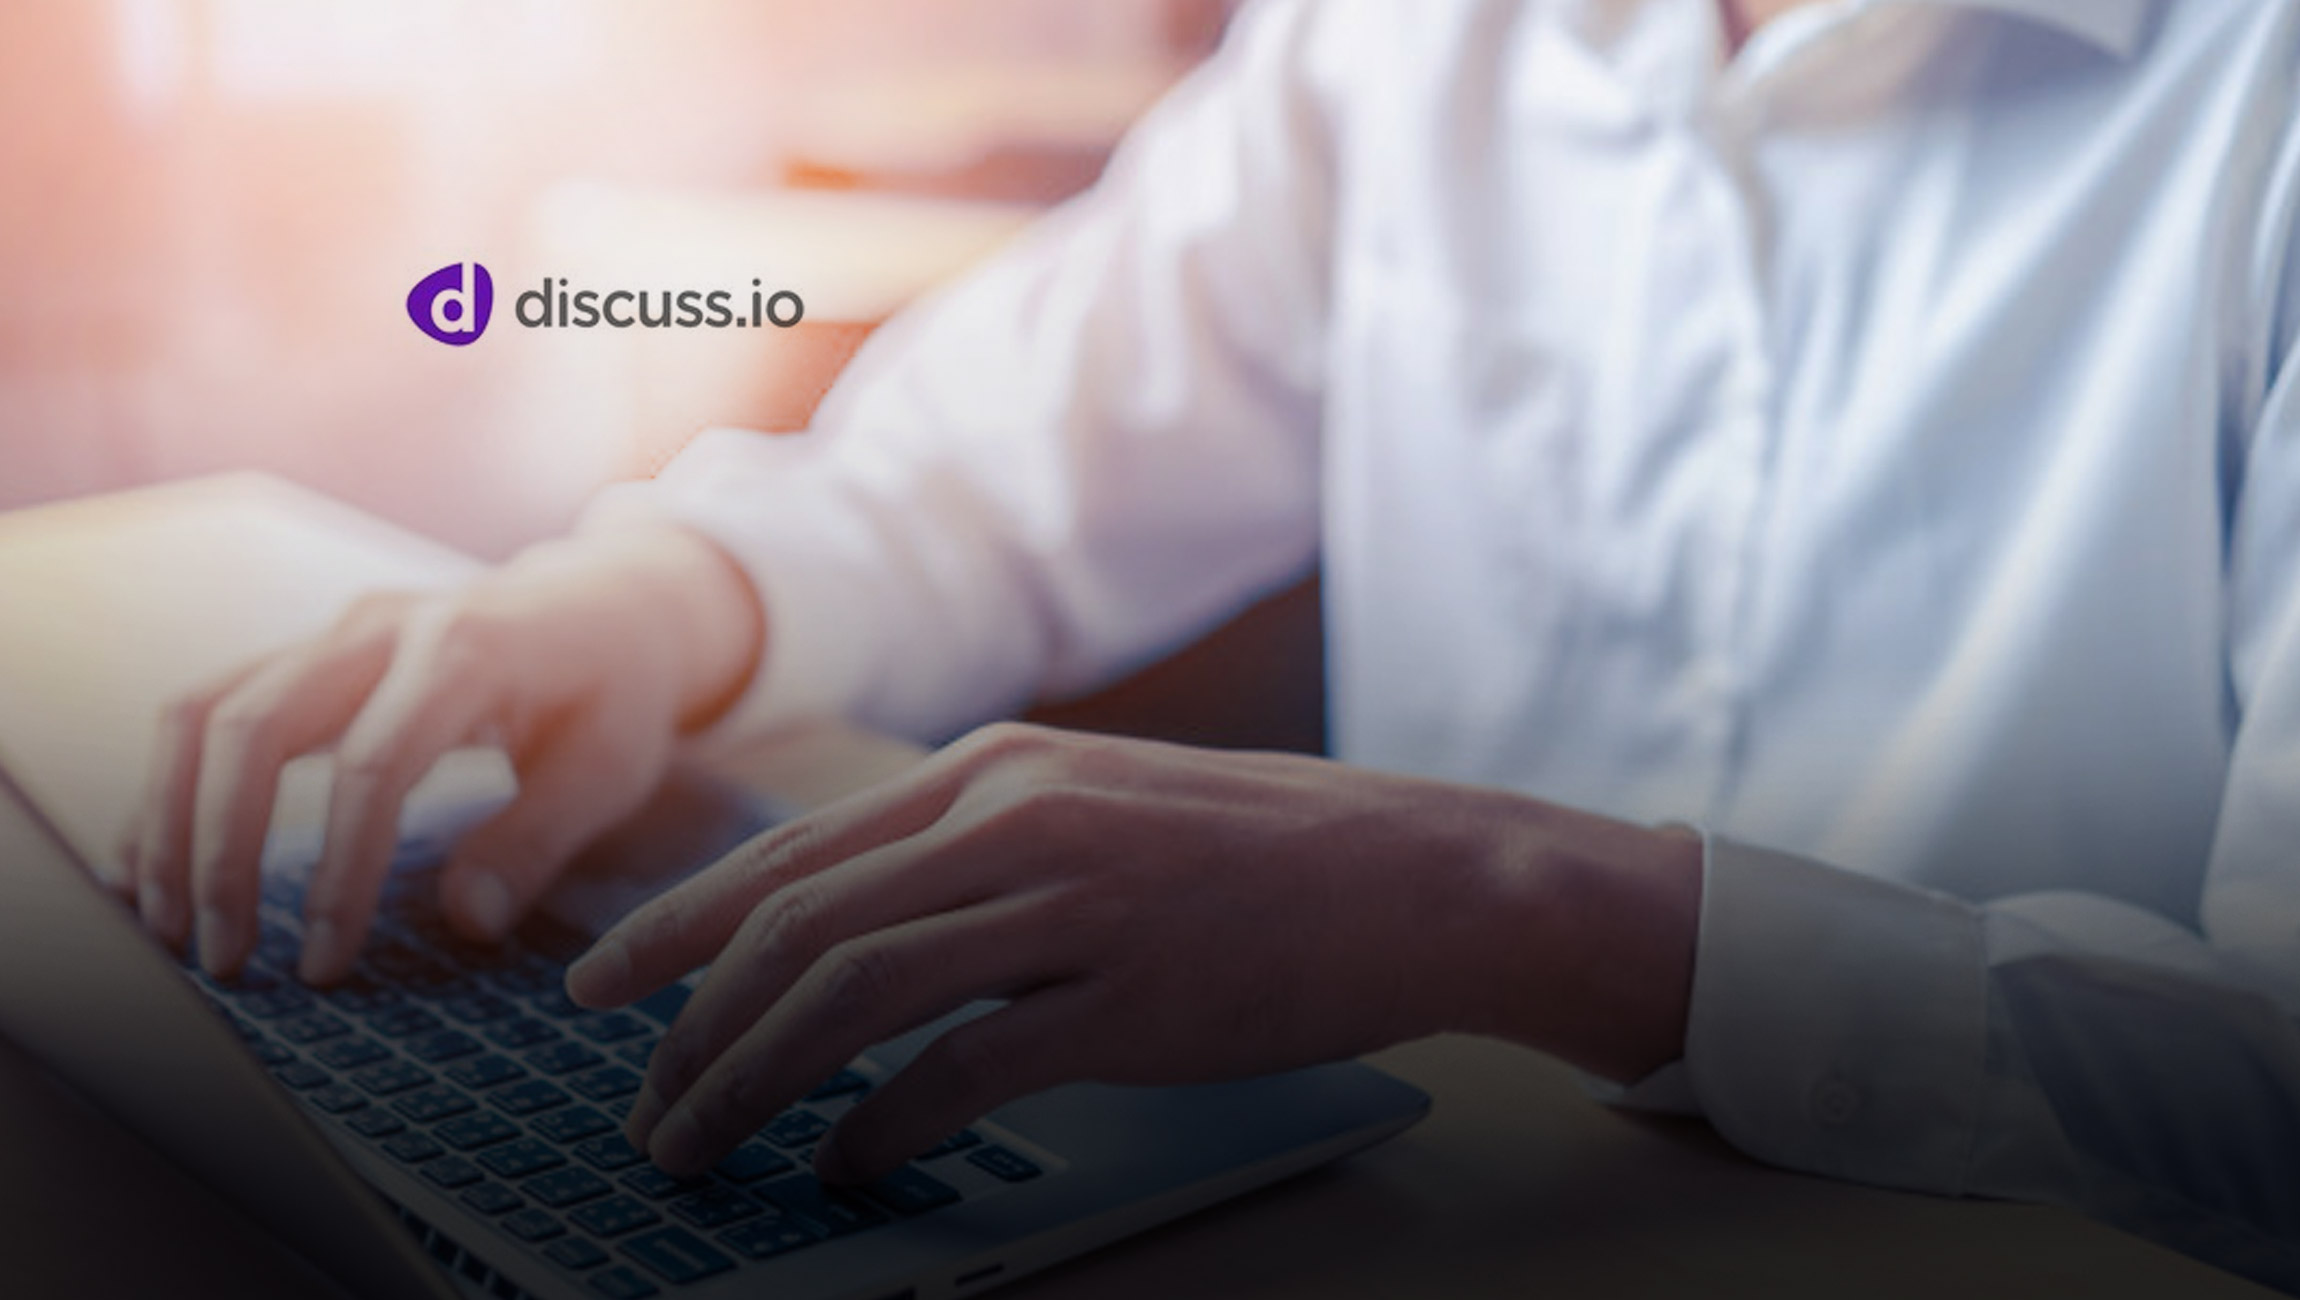 Discuss.io-Launches-Respondent-Management-Hub-to-Take-Friction-(and-Spreadsheets)-Out-of-Online-Qualitative-Research